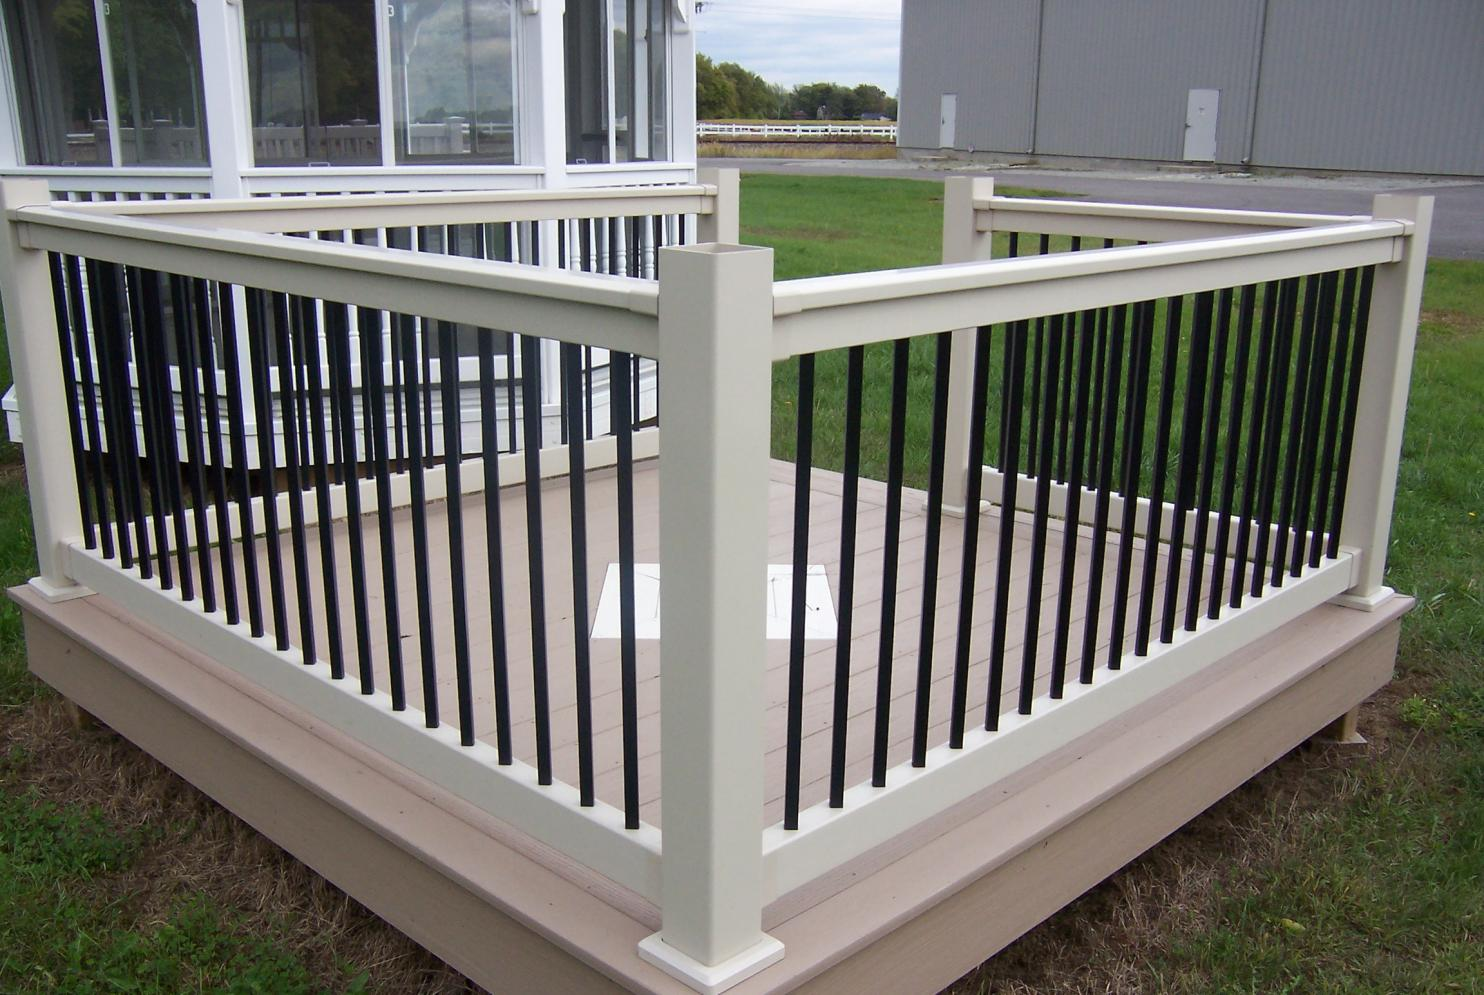 vinyl railing with black balusters decks fencing contractor talk. Black Bedroom Furniture Sets. Home Design Ideas